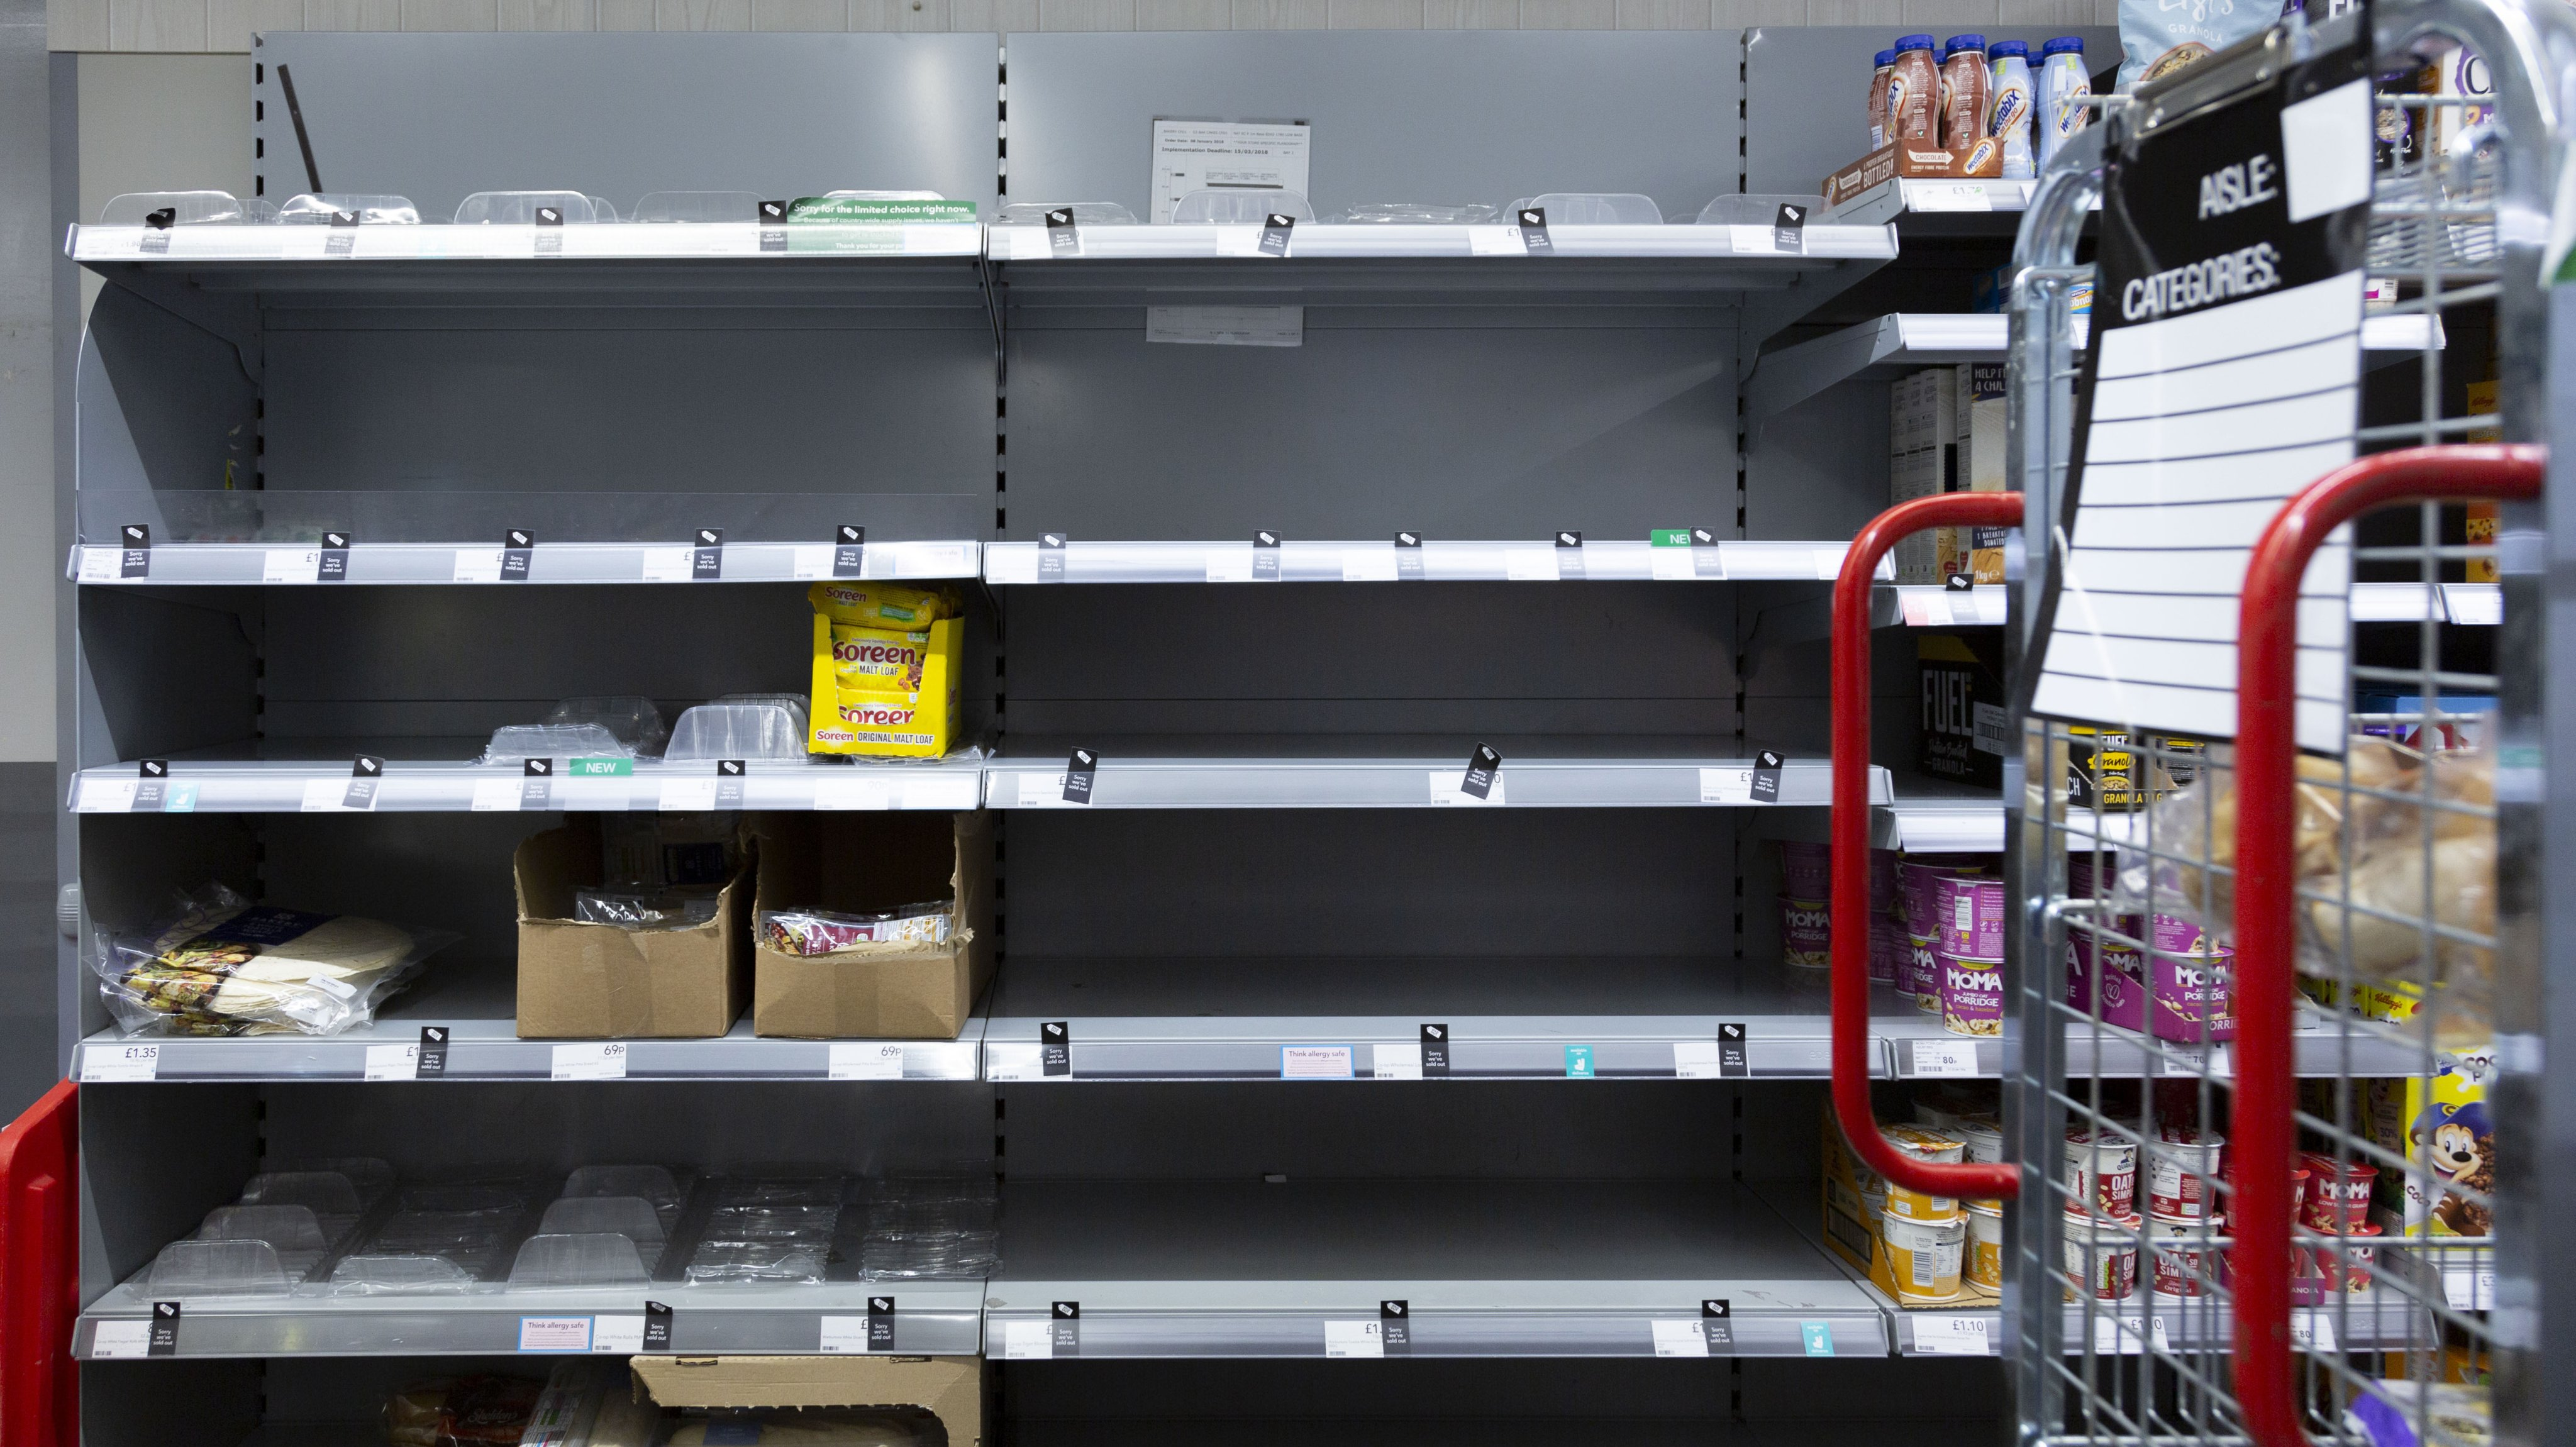 Shoppers face empty shelves in London markets due logistic crisis in UK